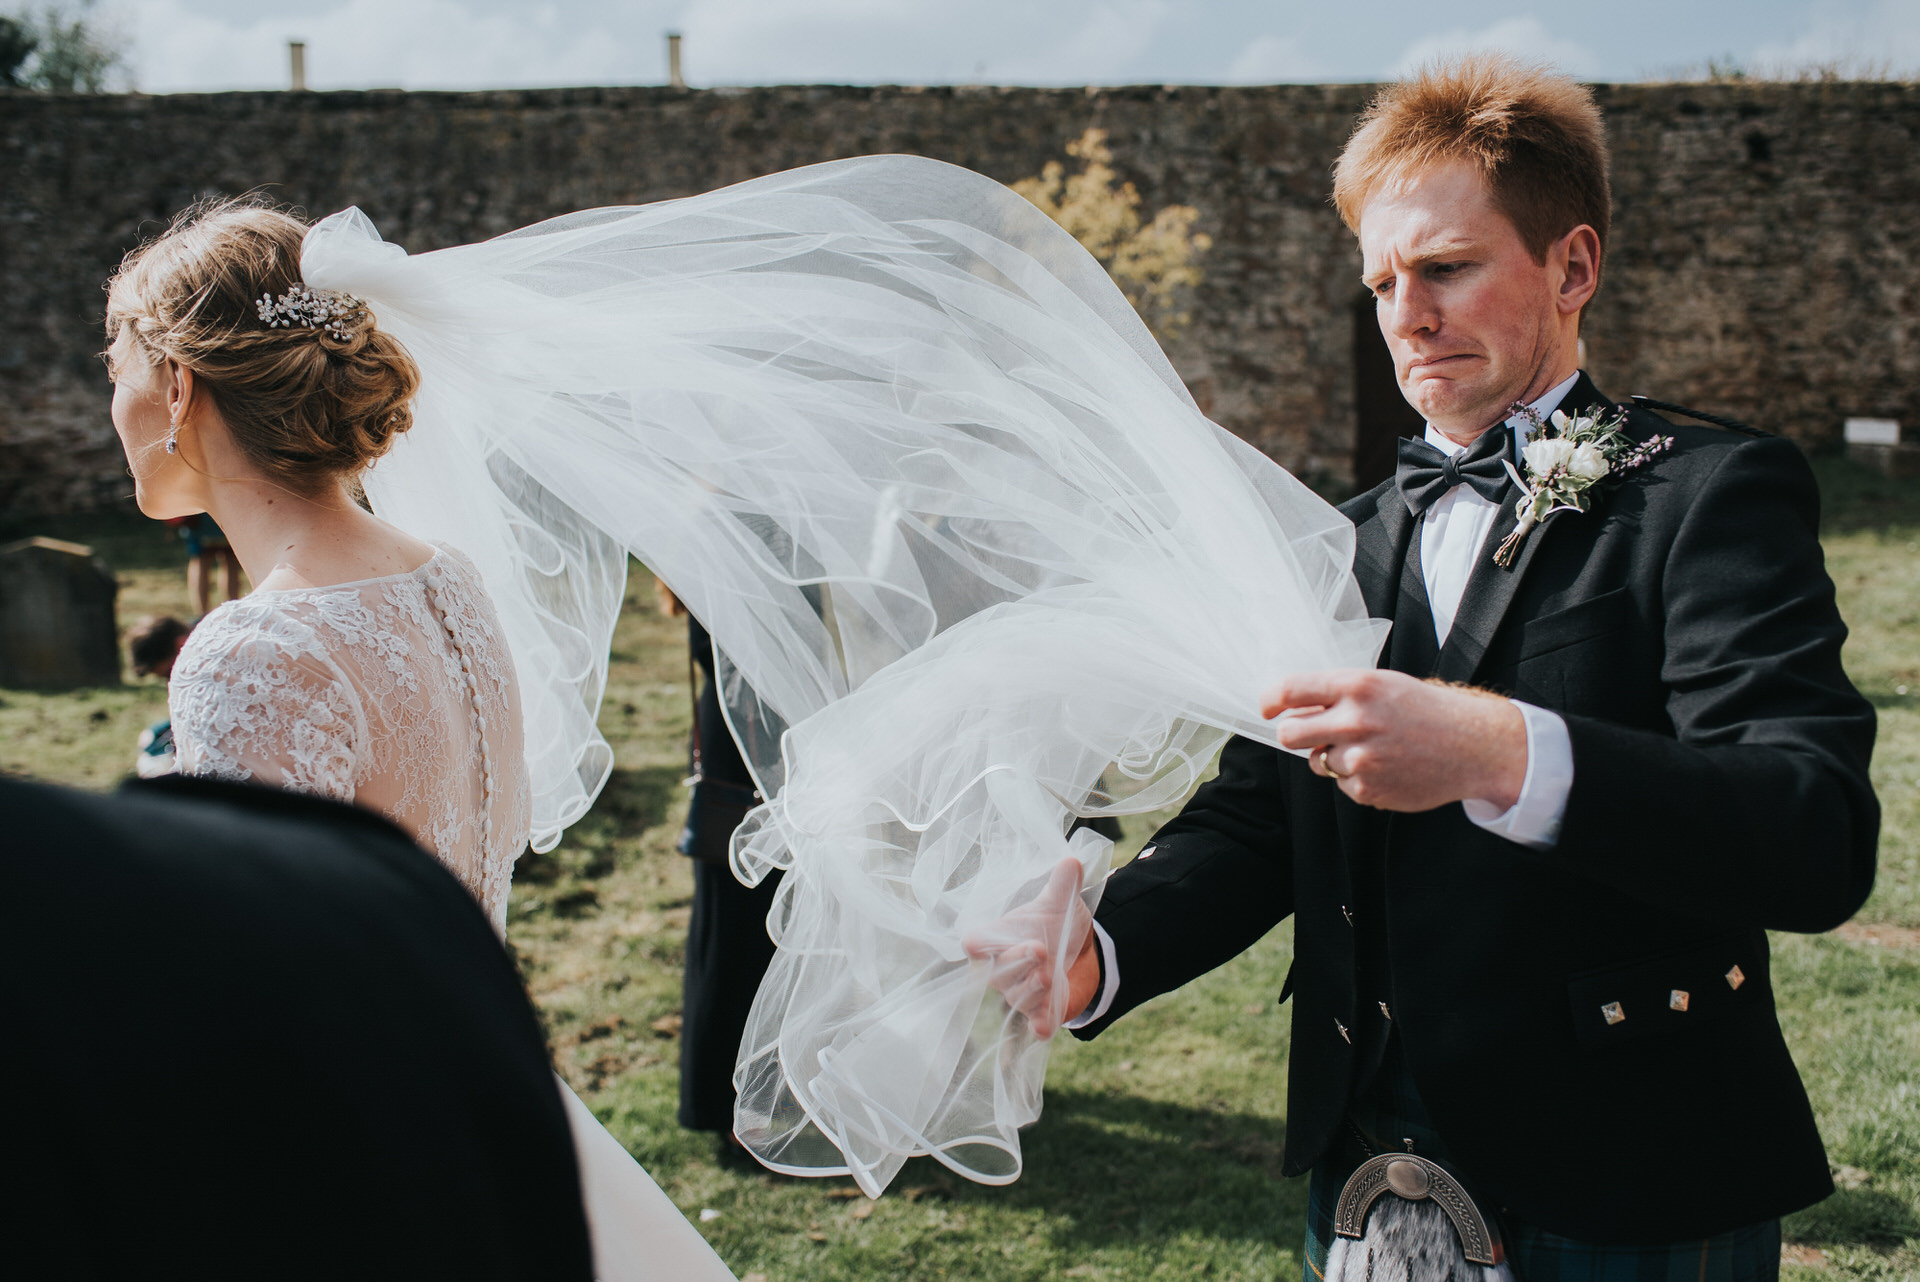 Groom struggles with veil